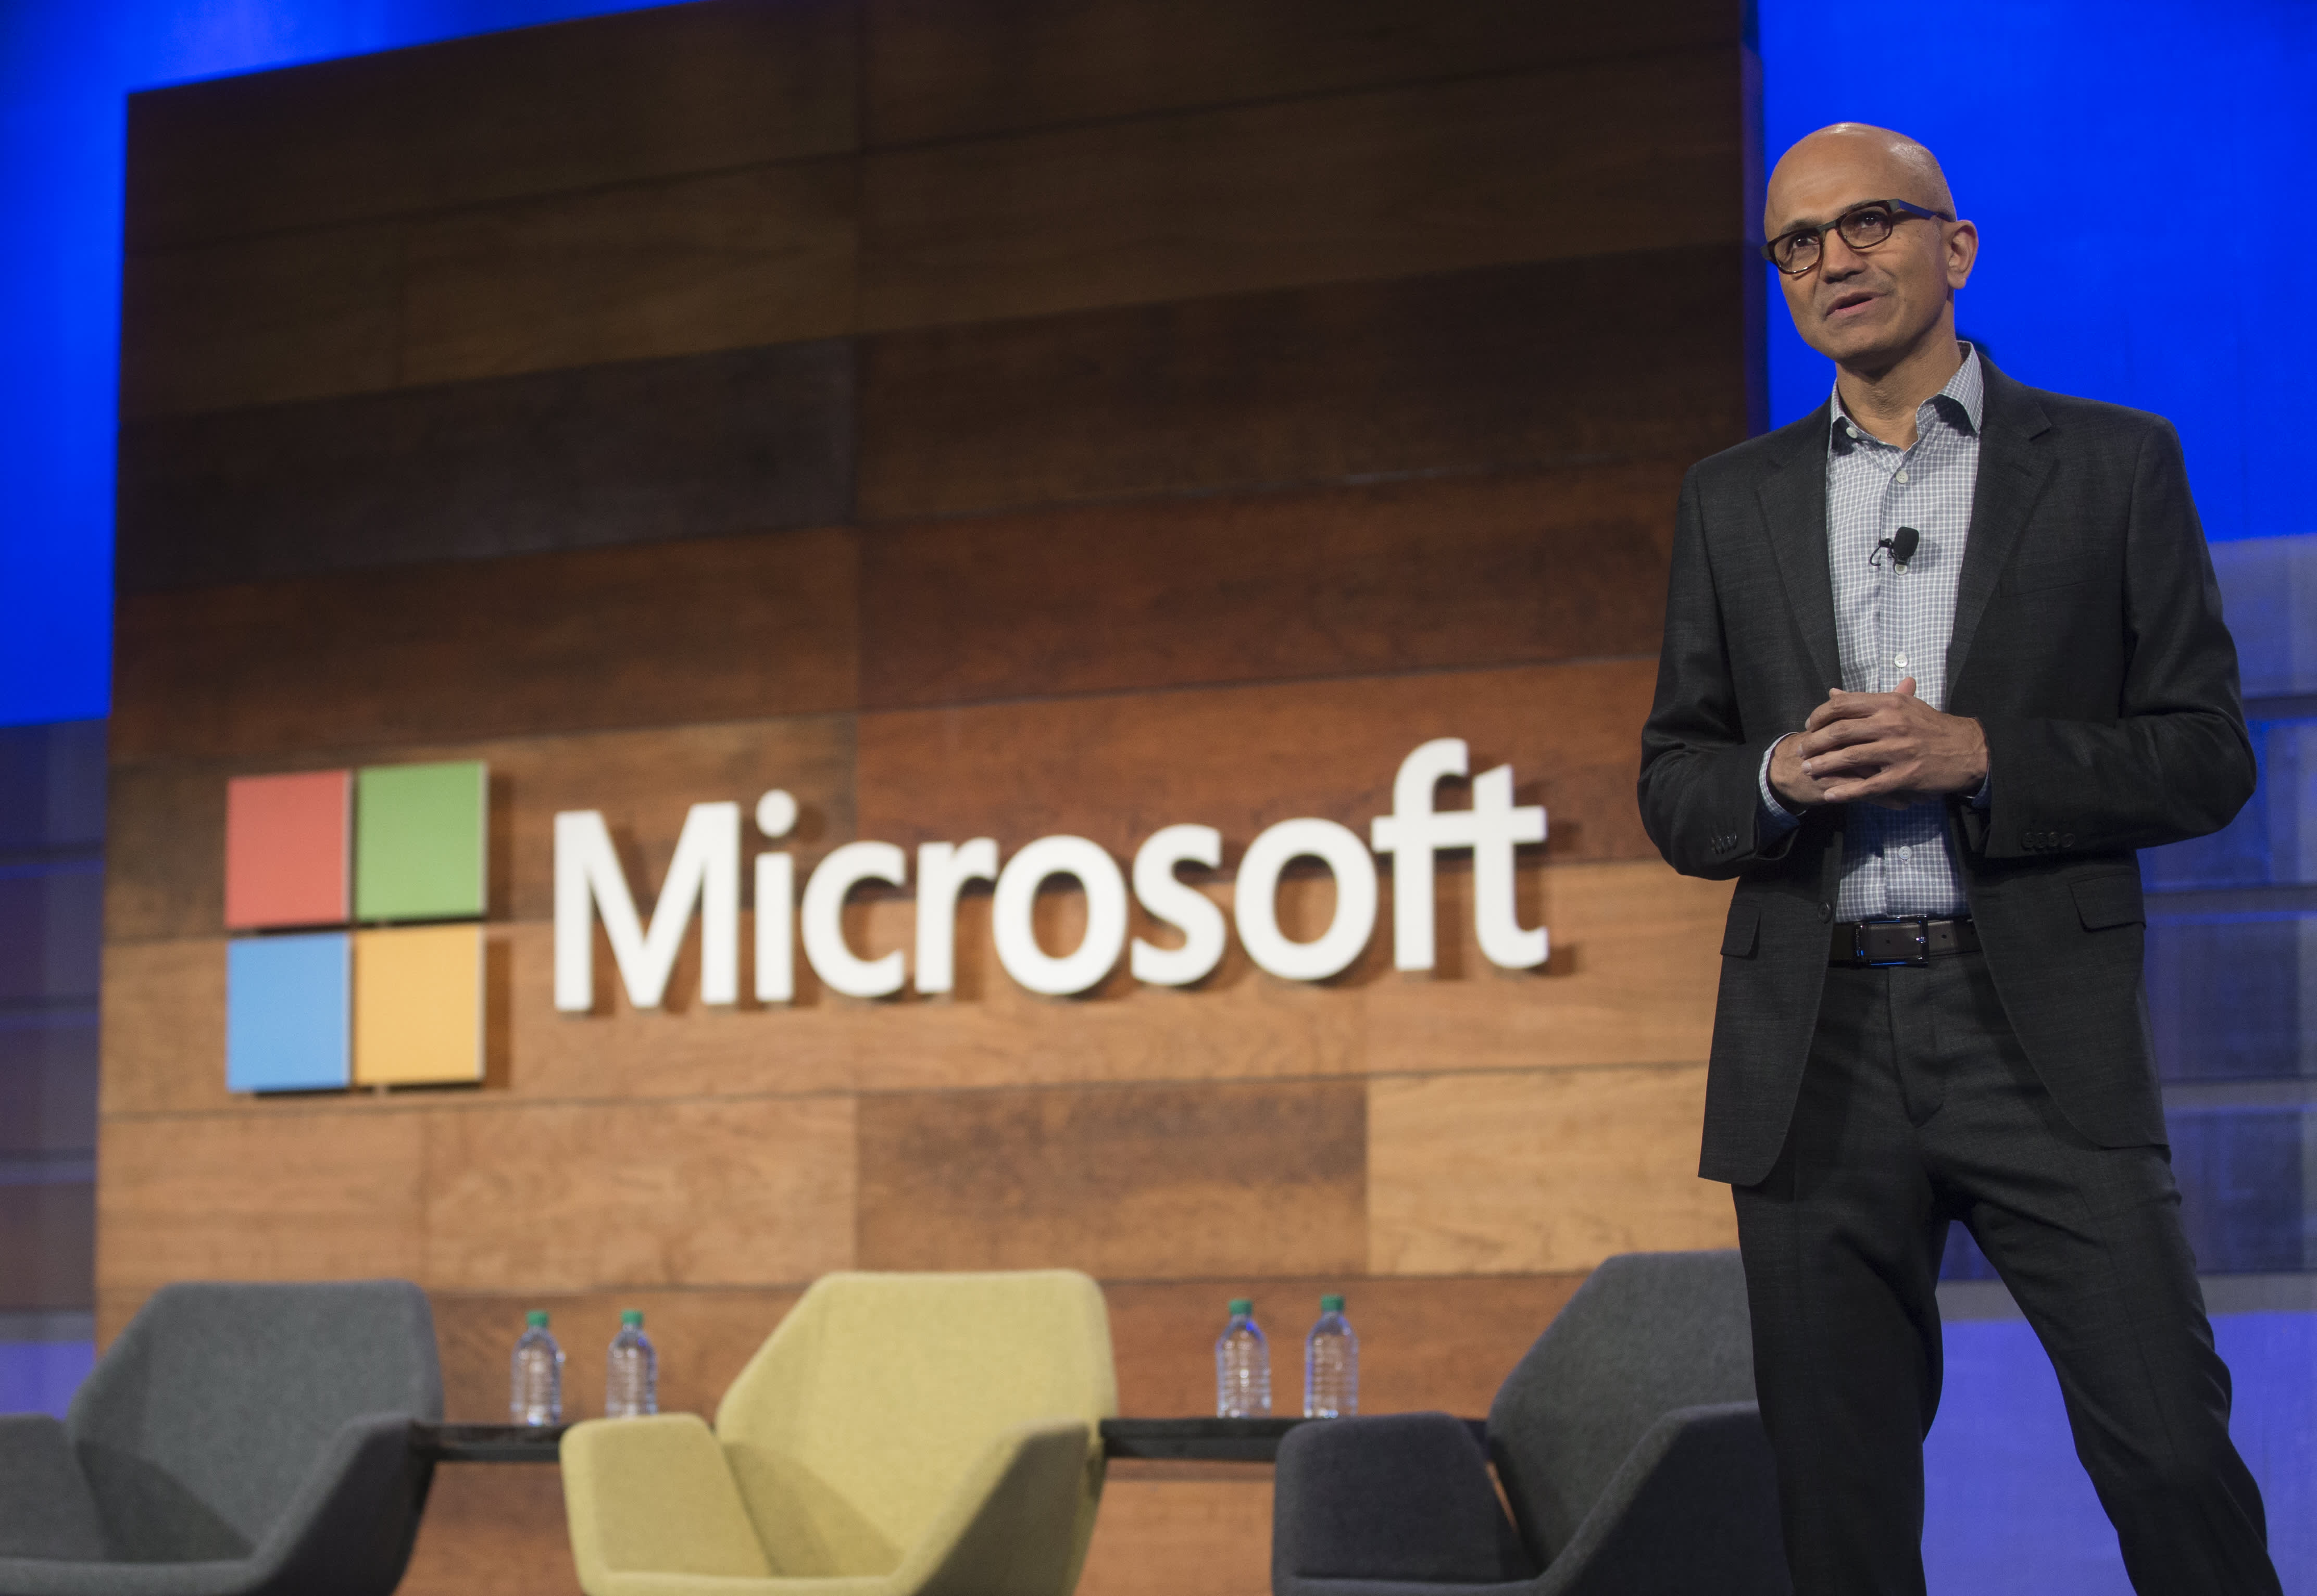 Microsoft, once considered a boring software maker, has outperformed tech unicorns since 2015